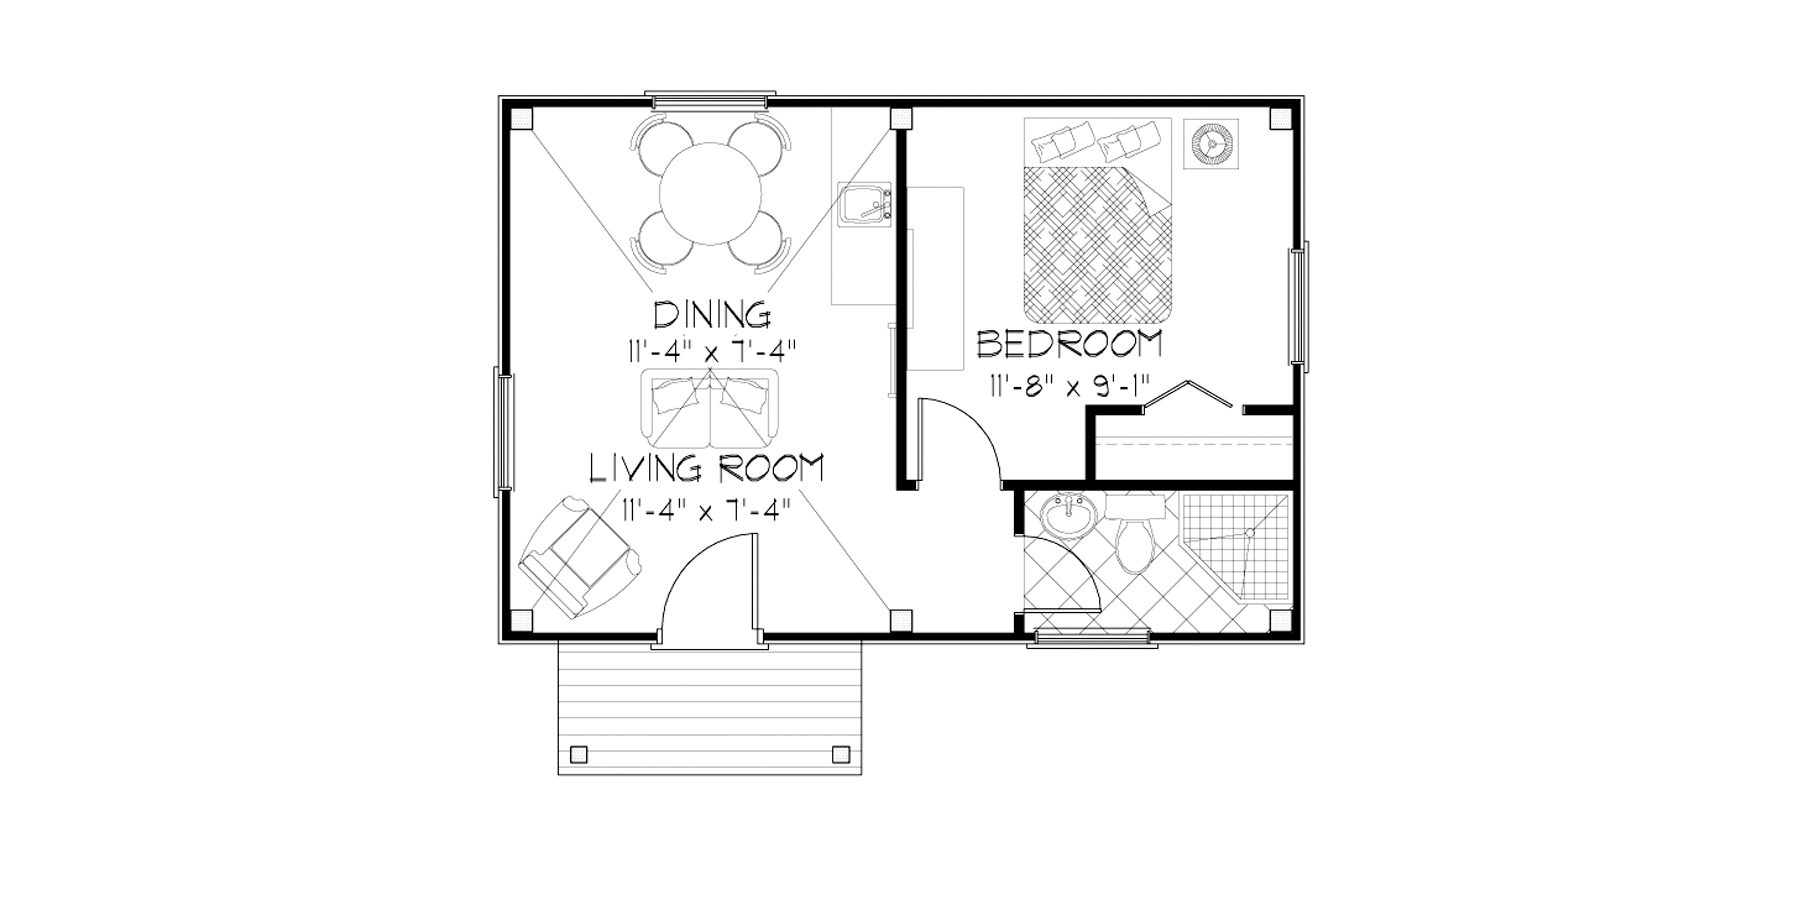 Normerica Timber Frames, House Plan, The Dillon 2254, First Floor Layout